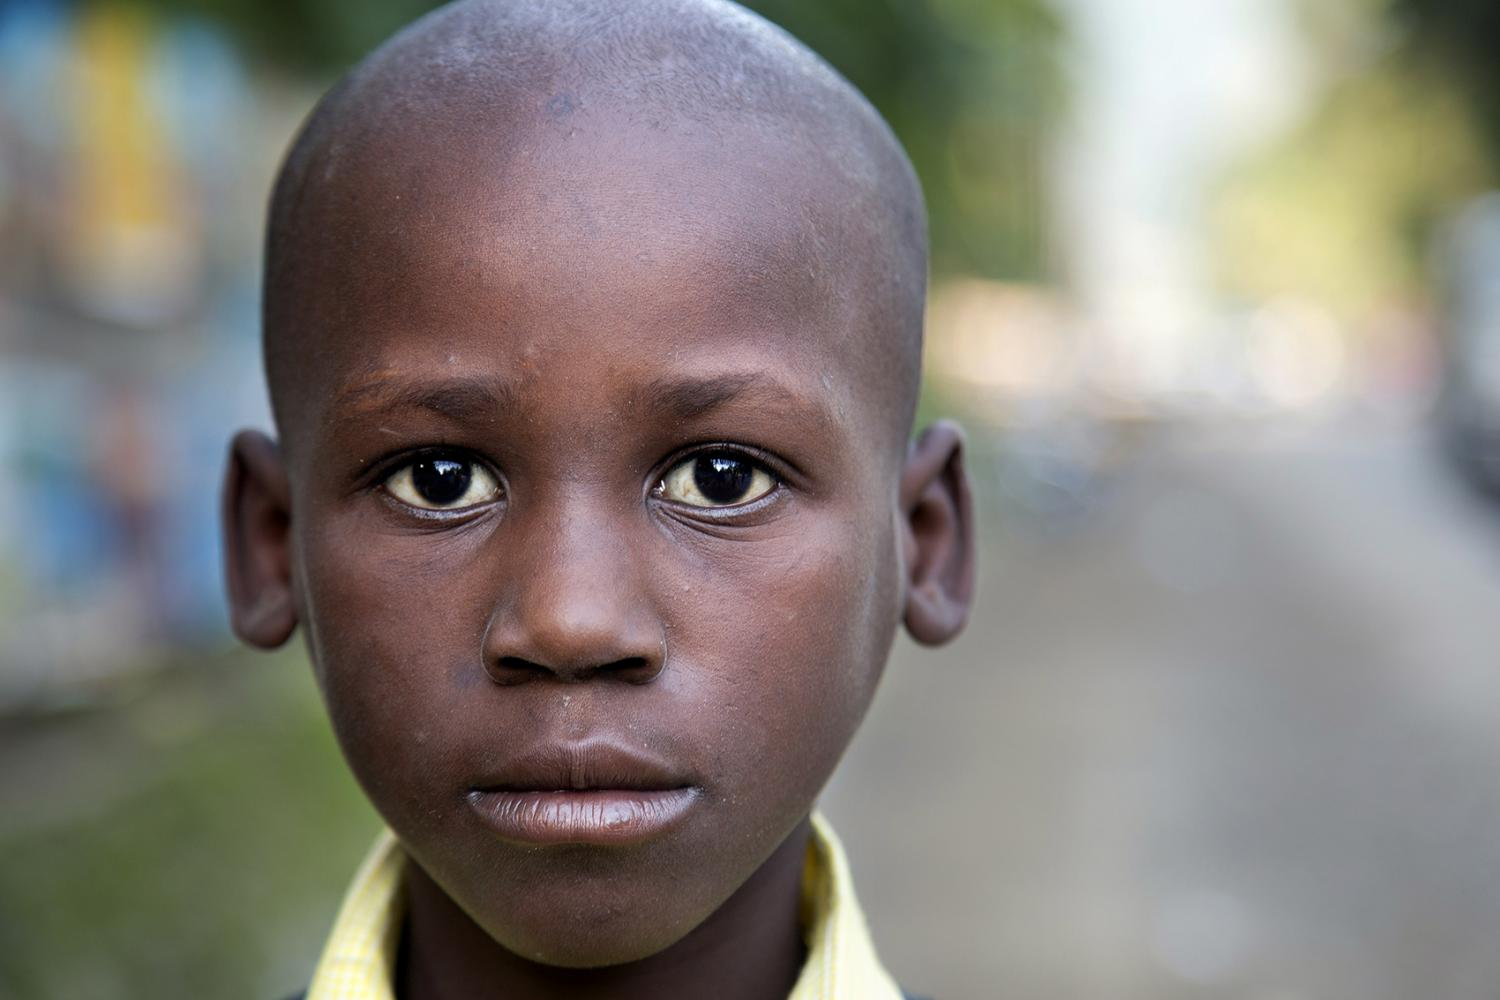 A boy on his way home from school in Milot, Haiti.